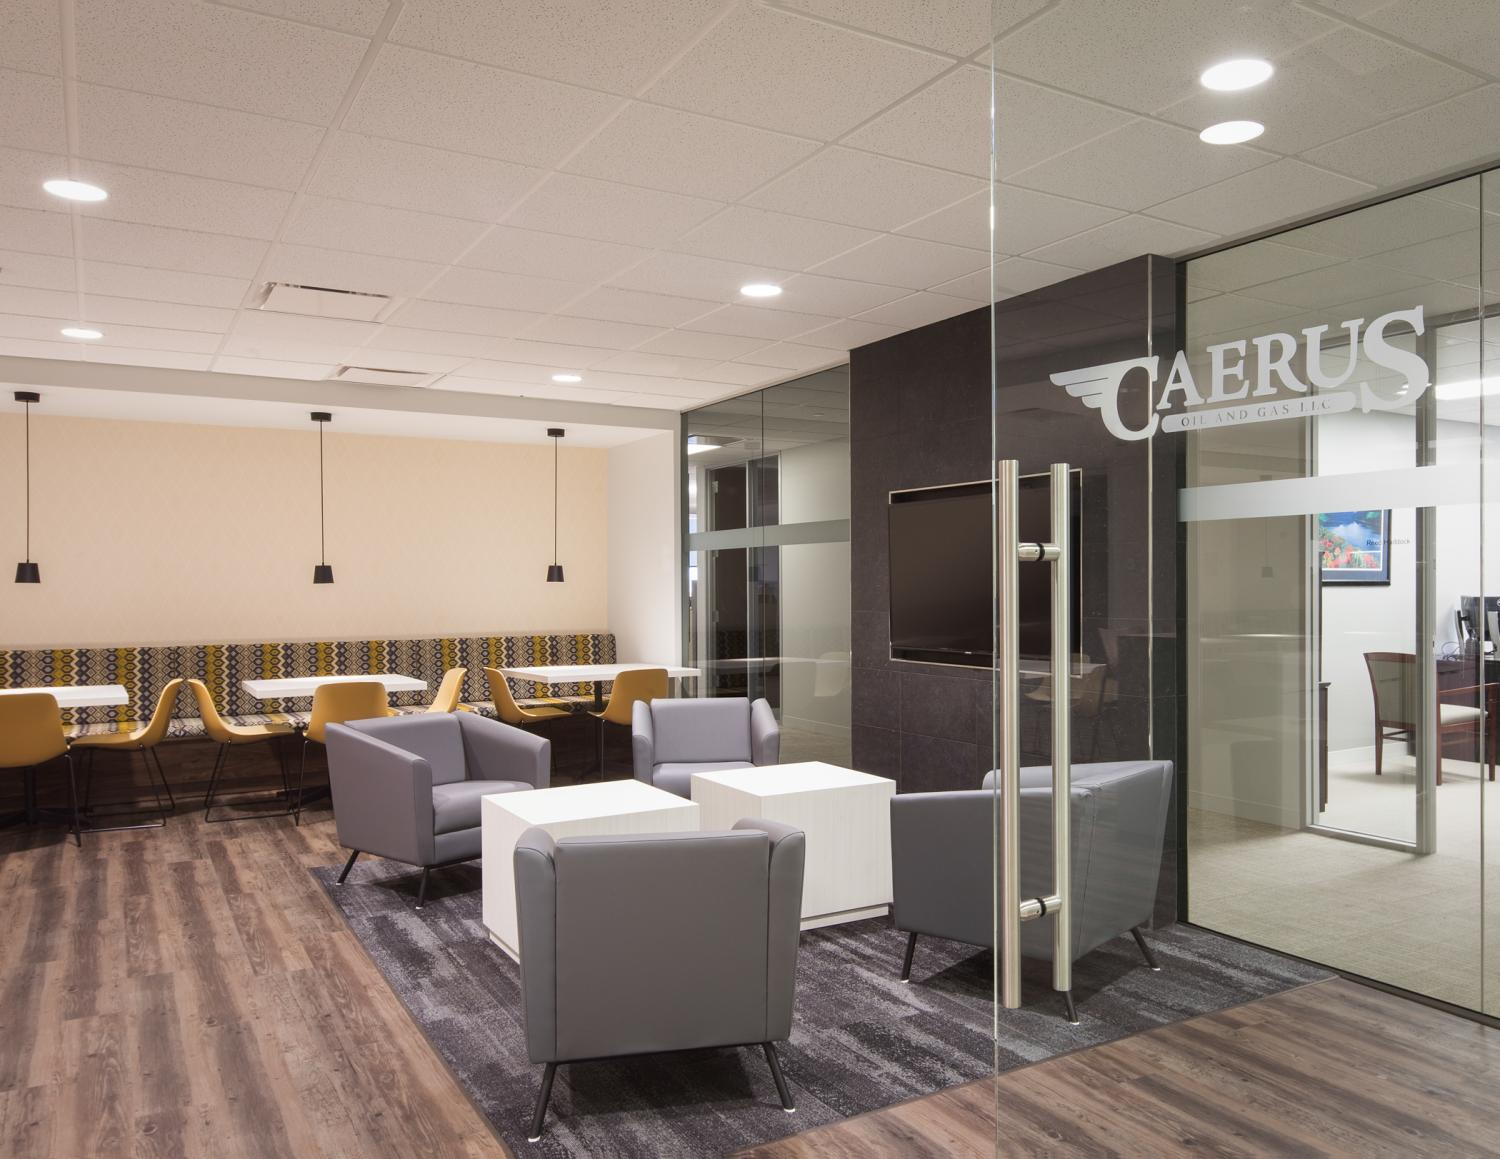 Caerus Oil and Gas Break Room Commercial Construction Denver Colorado